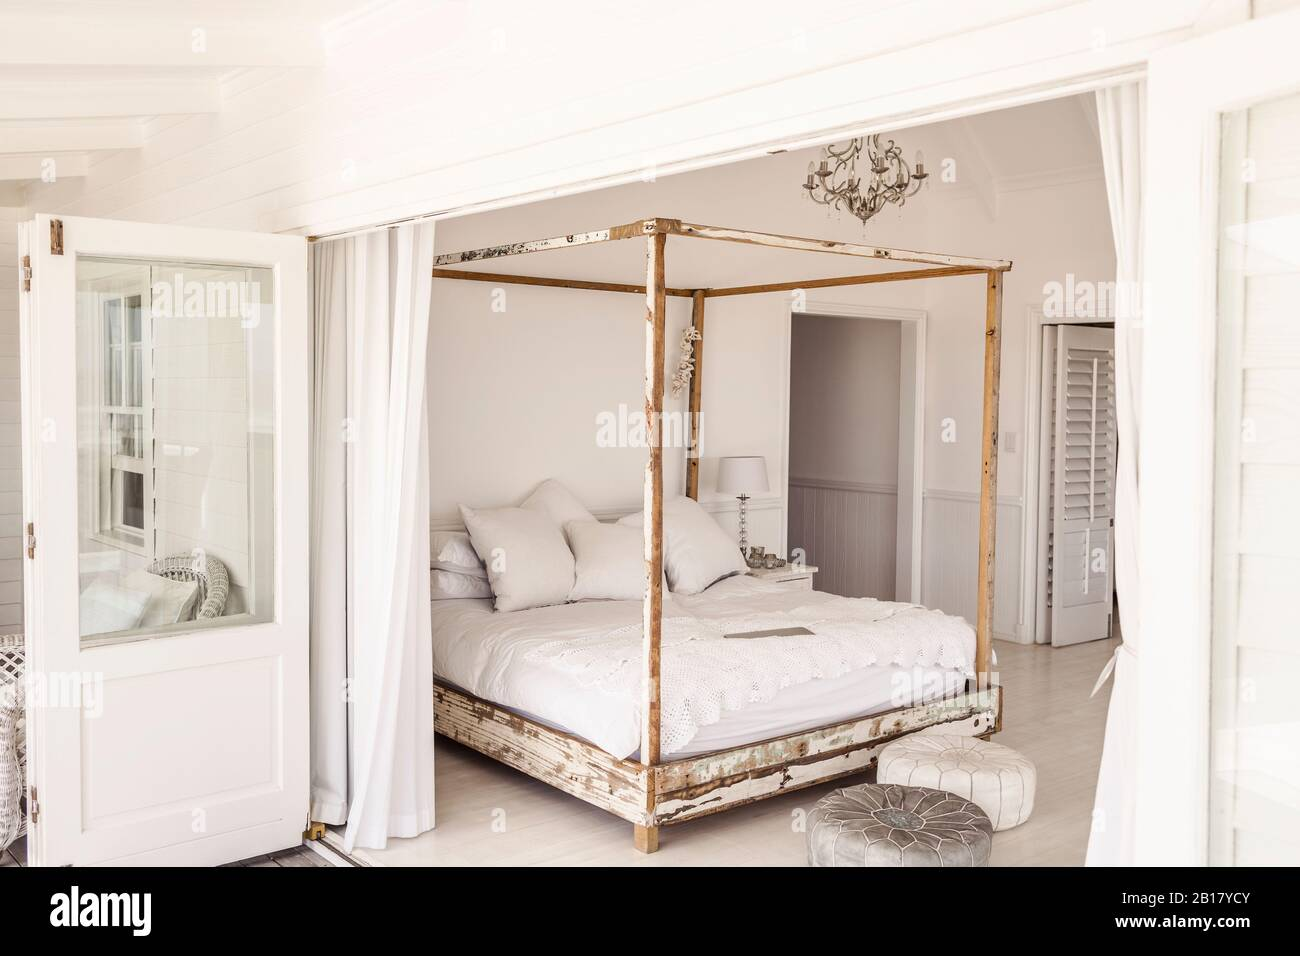 Shabby Chic Furniture High Resolution Stock Photography And Images Alamy